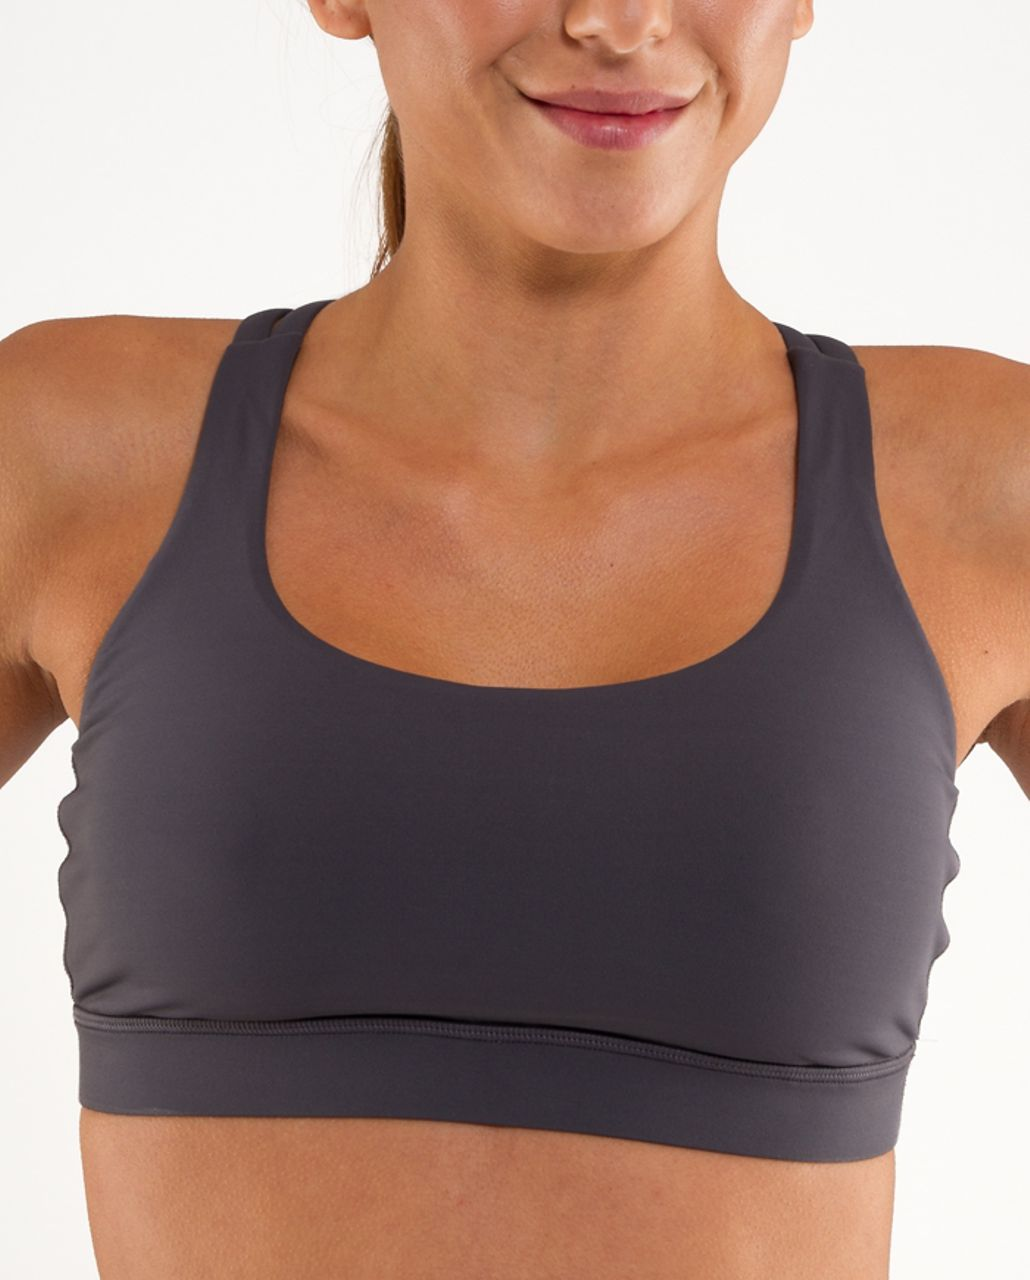 Lululemon Energy Bra - Coal